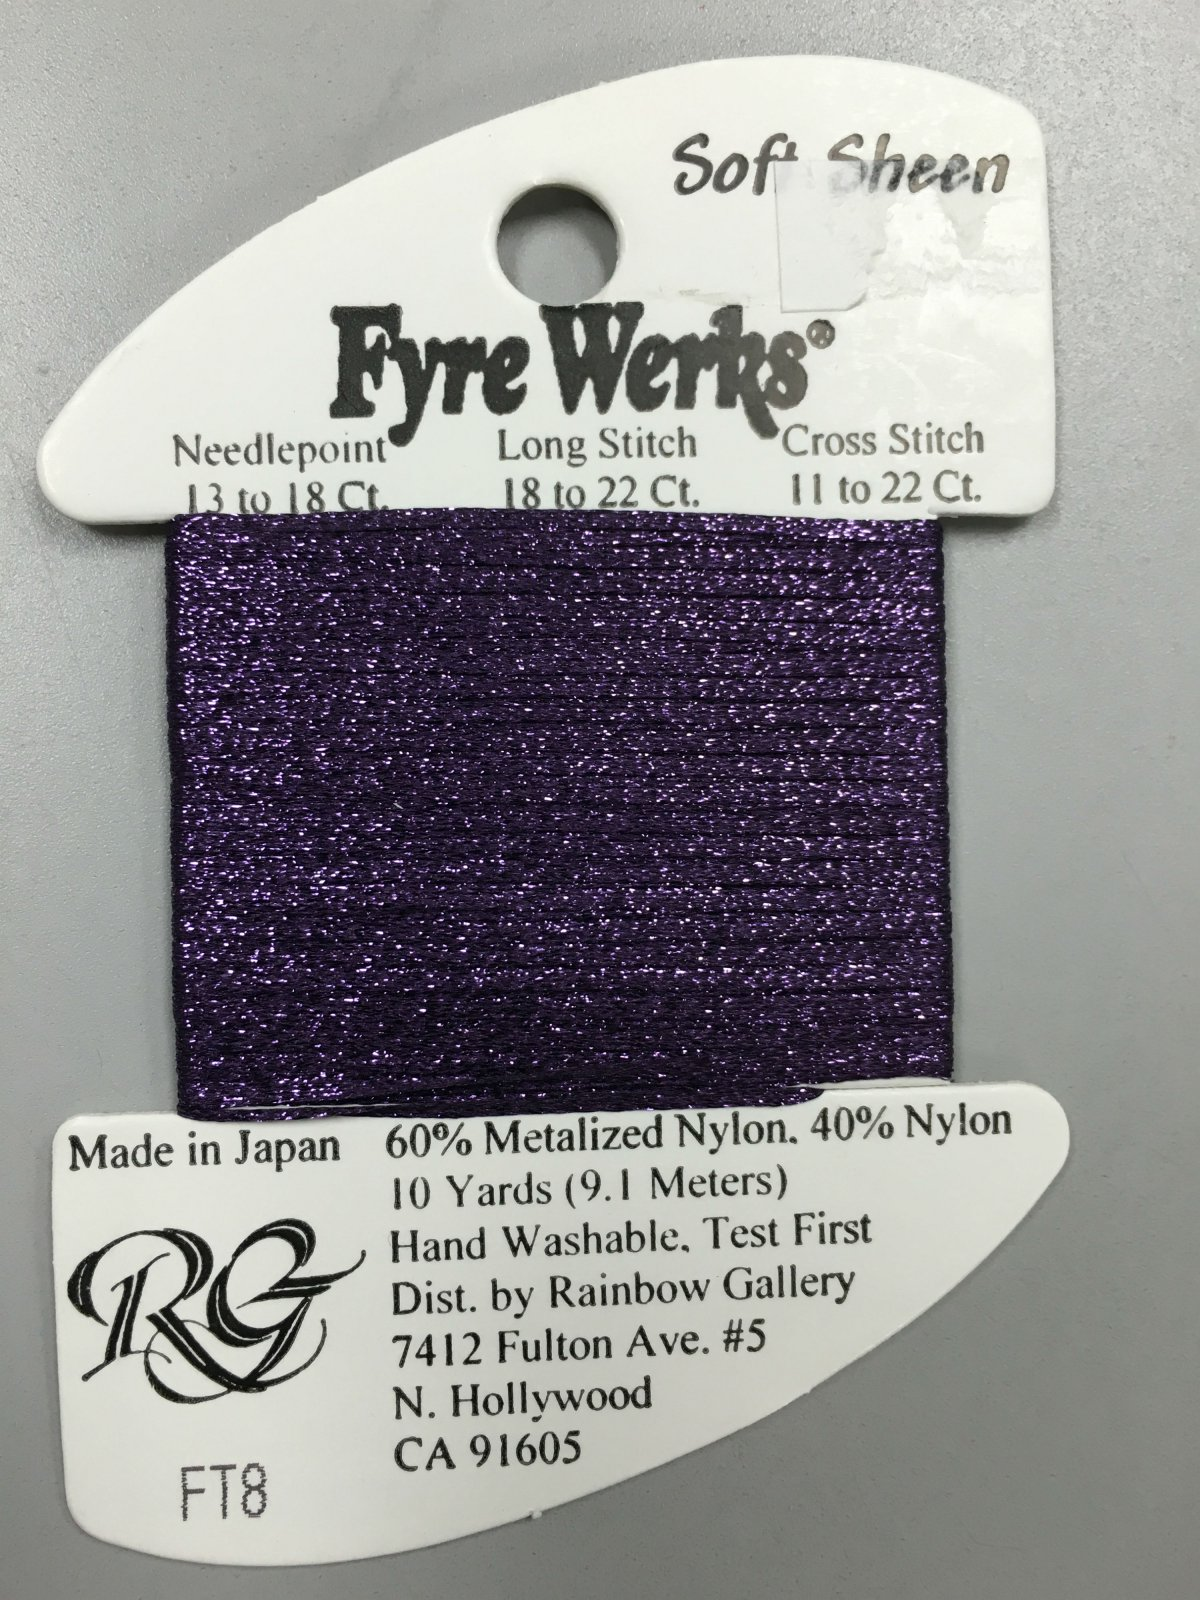 Fyre Werks Soft Sheen FT8